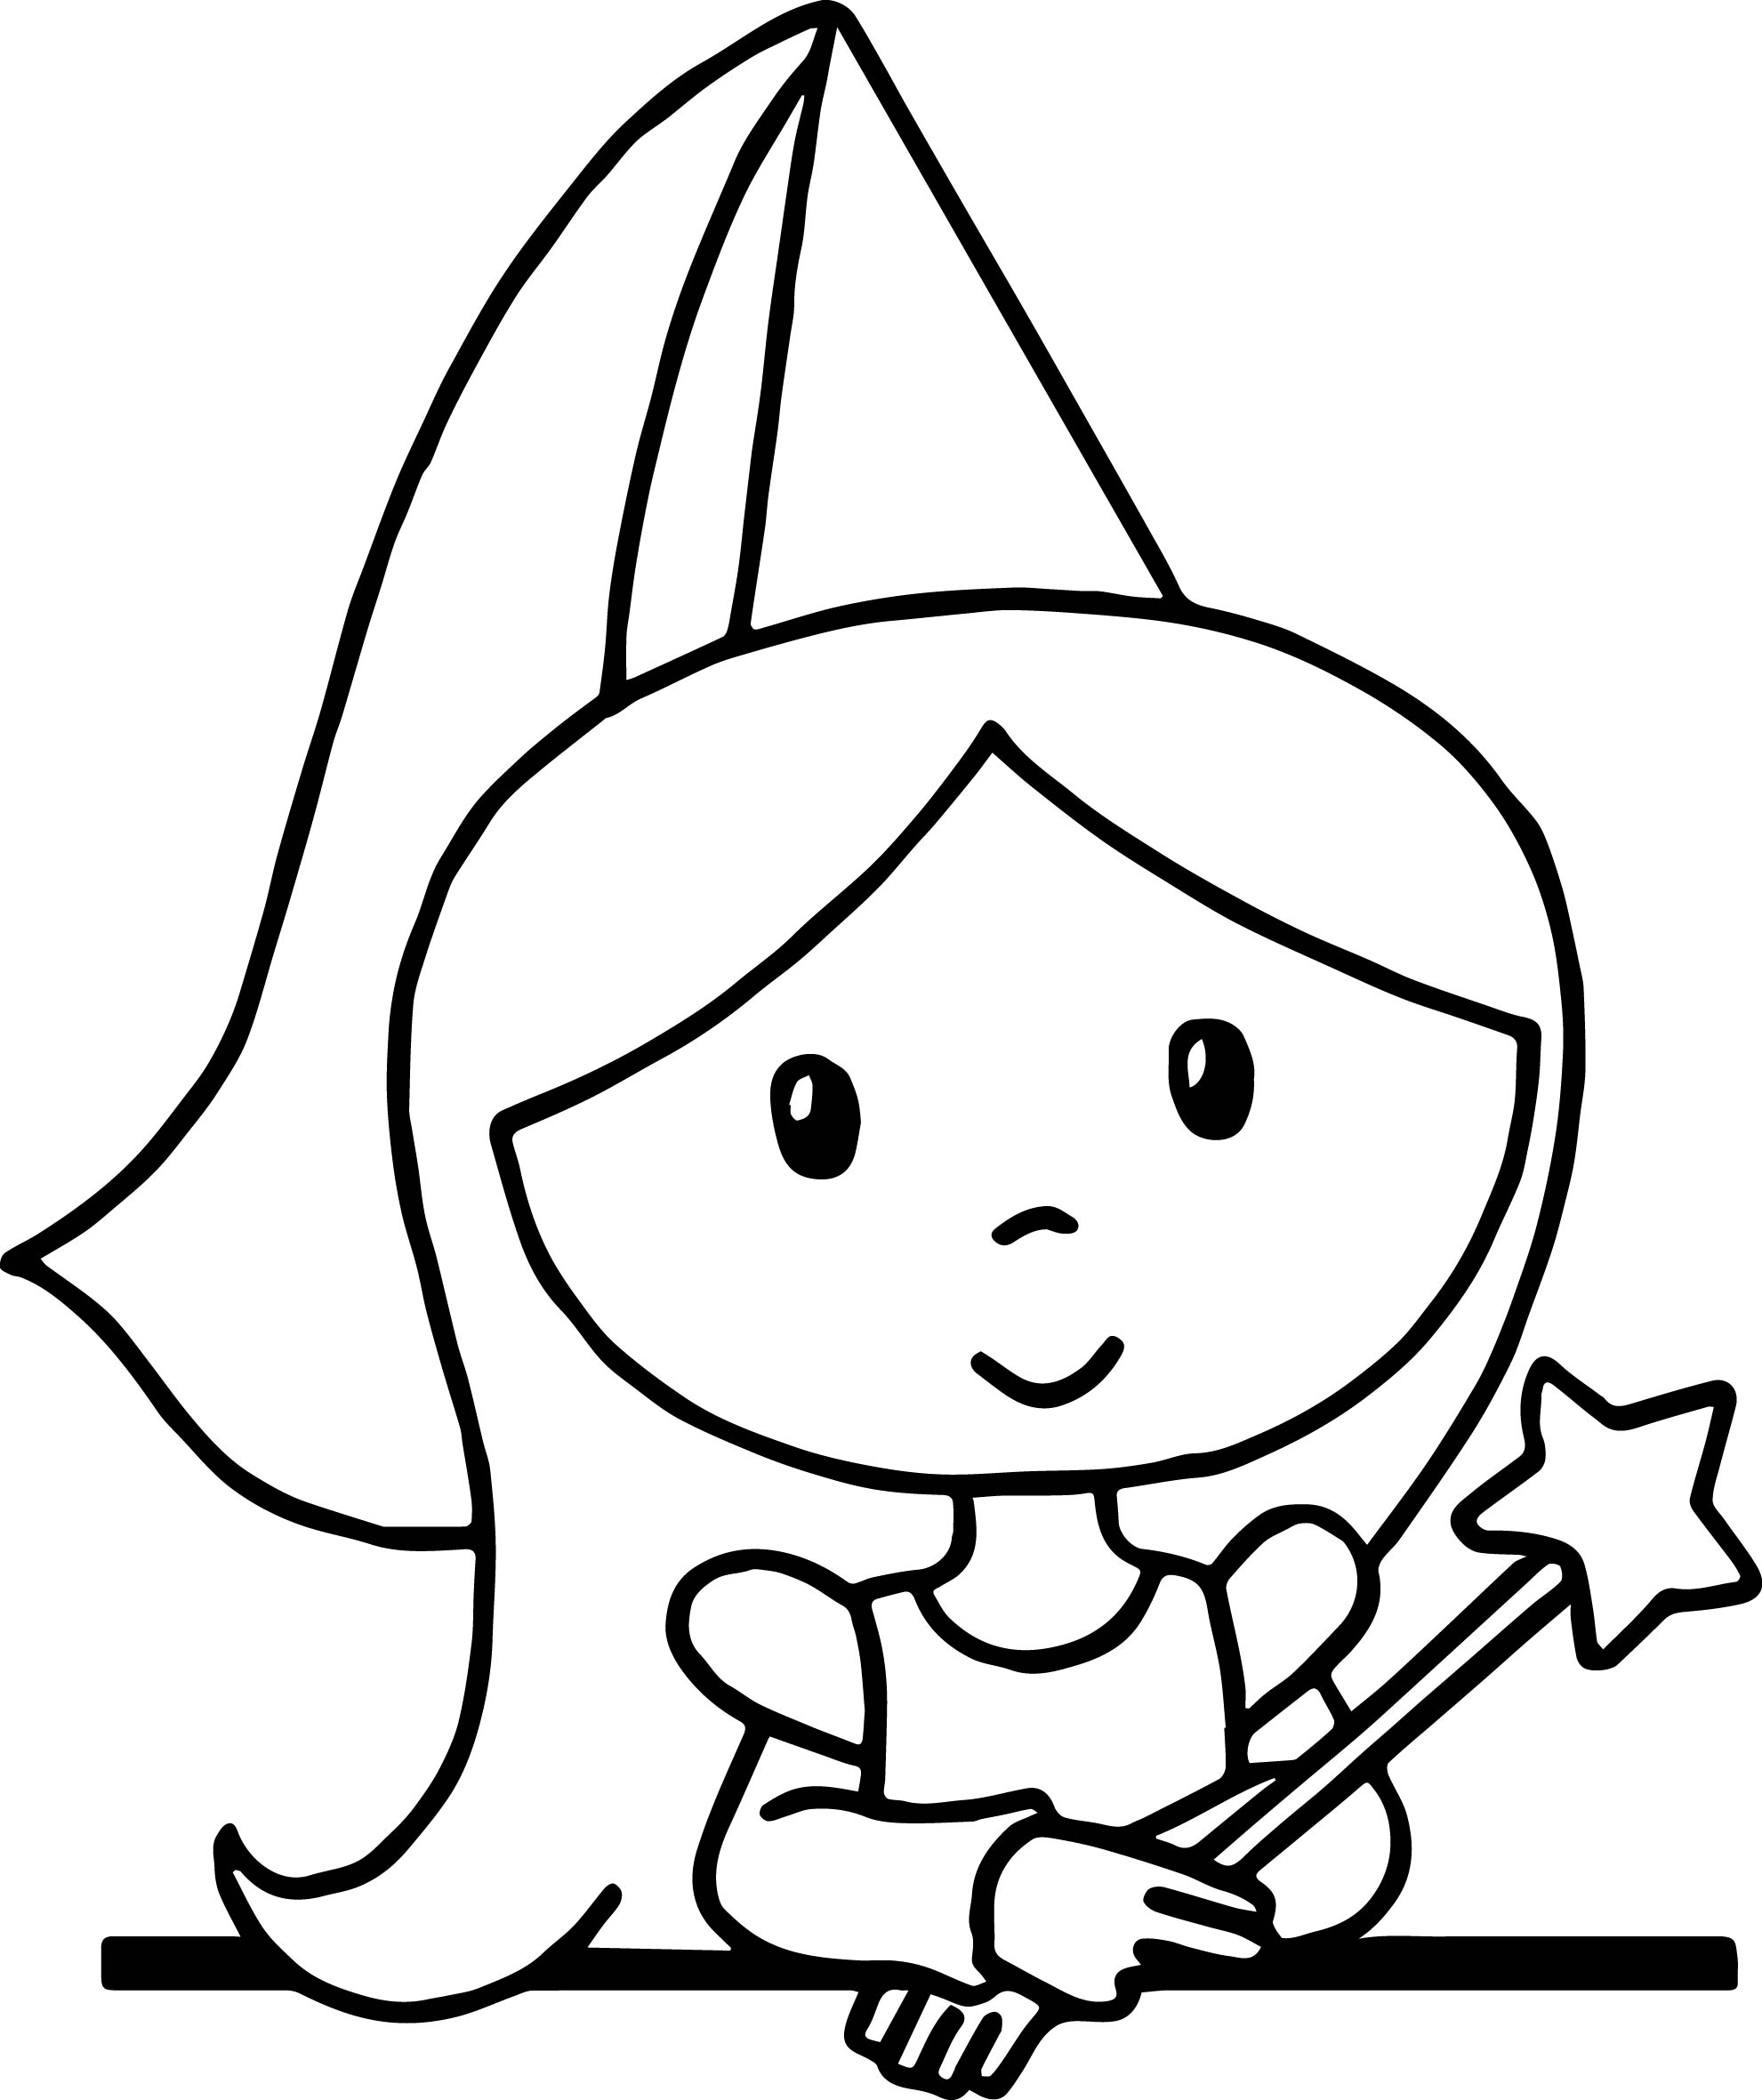 make your own coloring pages from photos - cute cartoon princess standing coloring page